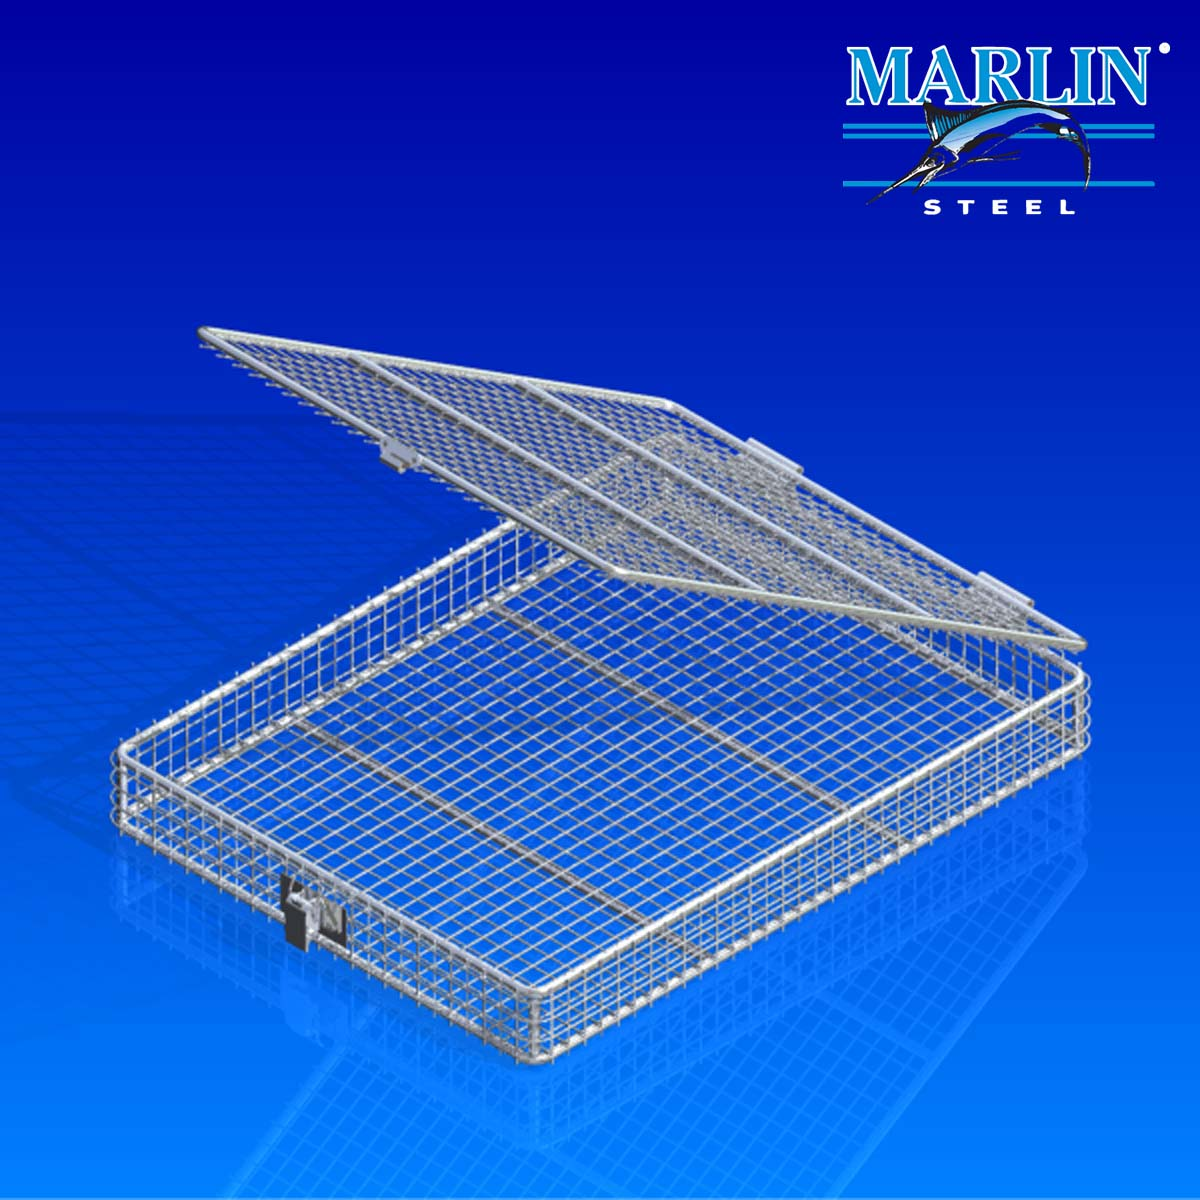 Marlin Steel wire baskets with lids 789001.jpg